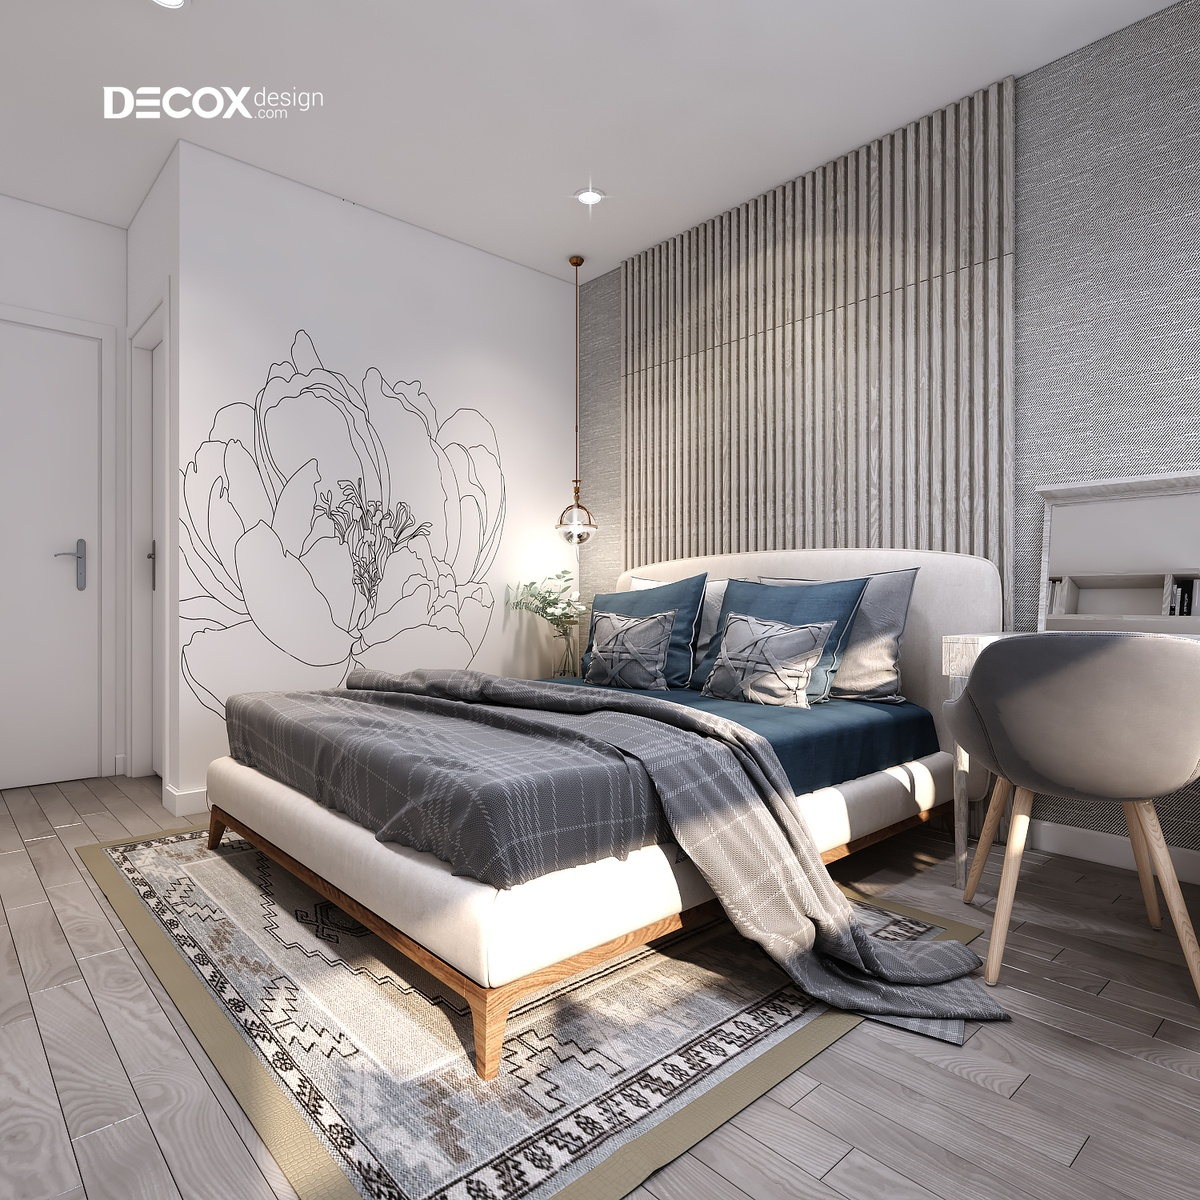 thiet-ke-noi-that-orchard-parkview-77m2-de180101-phong-ngu-master-13-decox-design